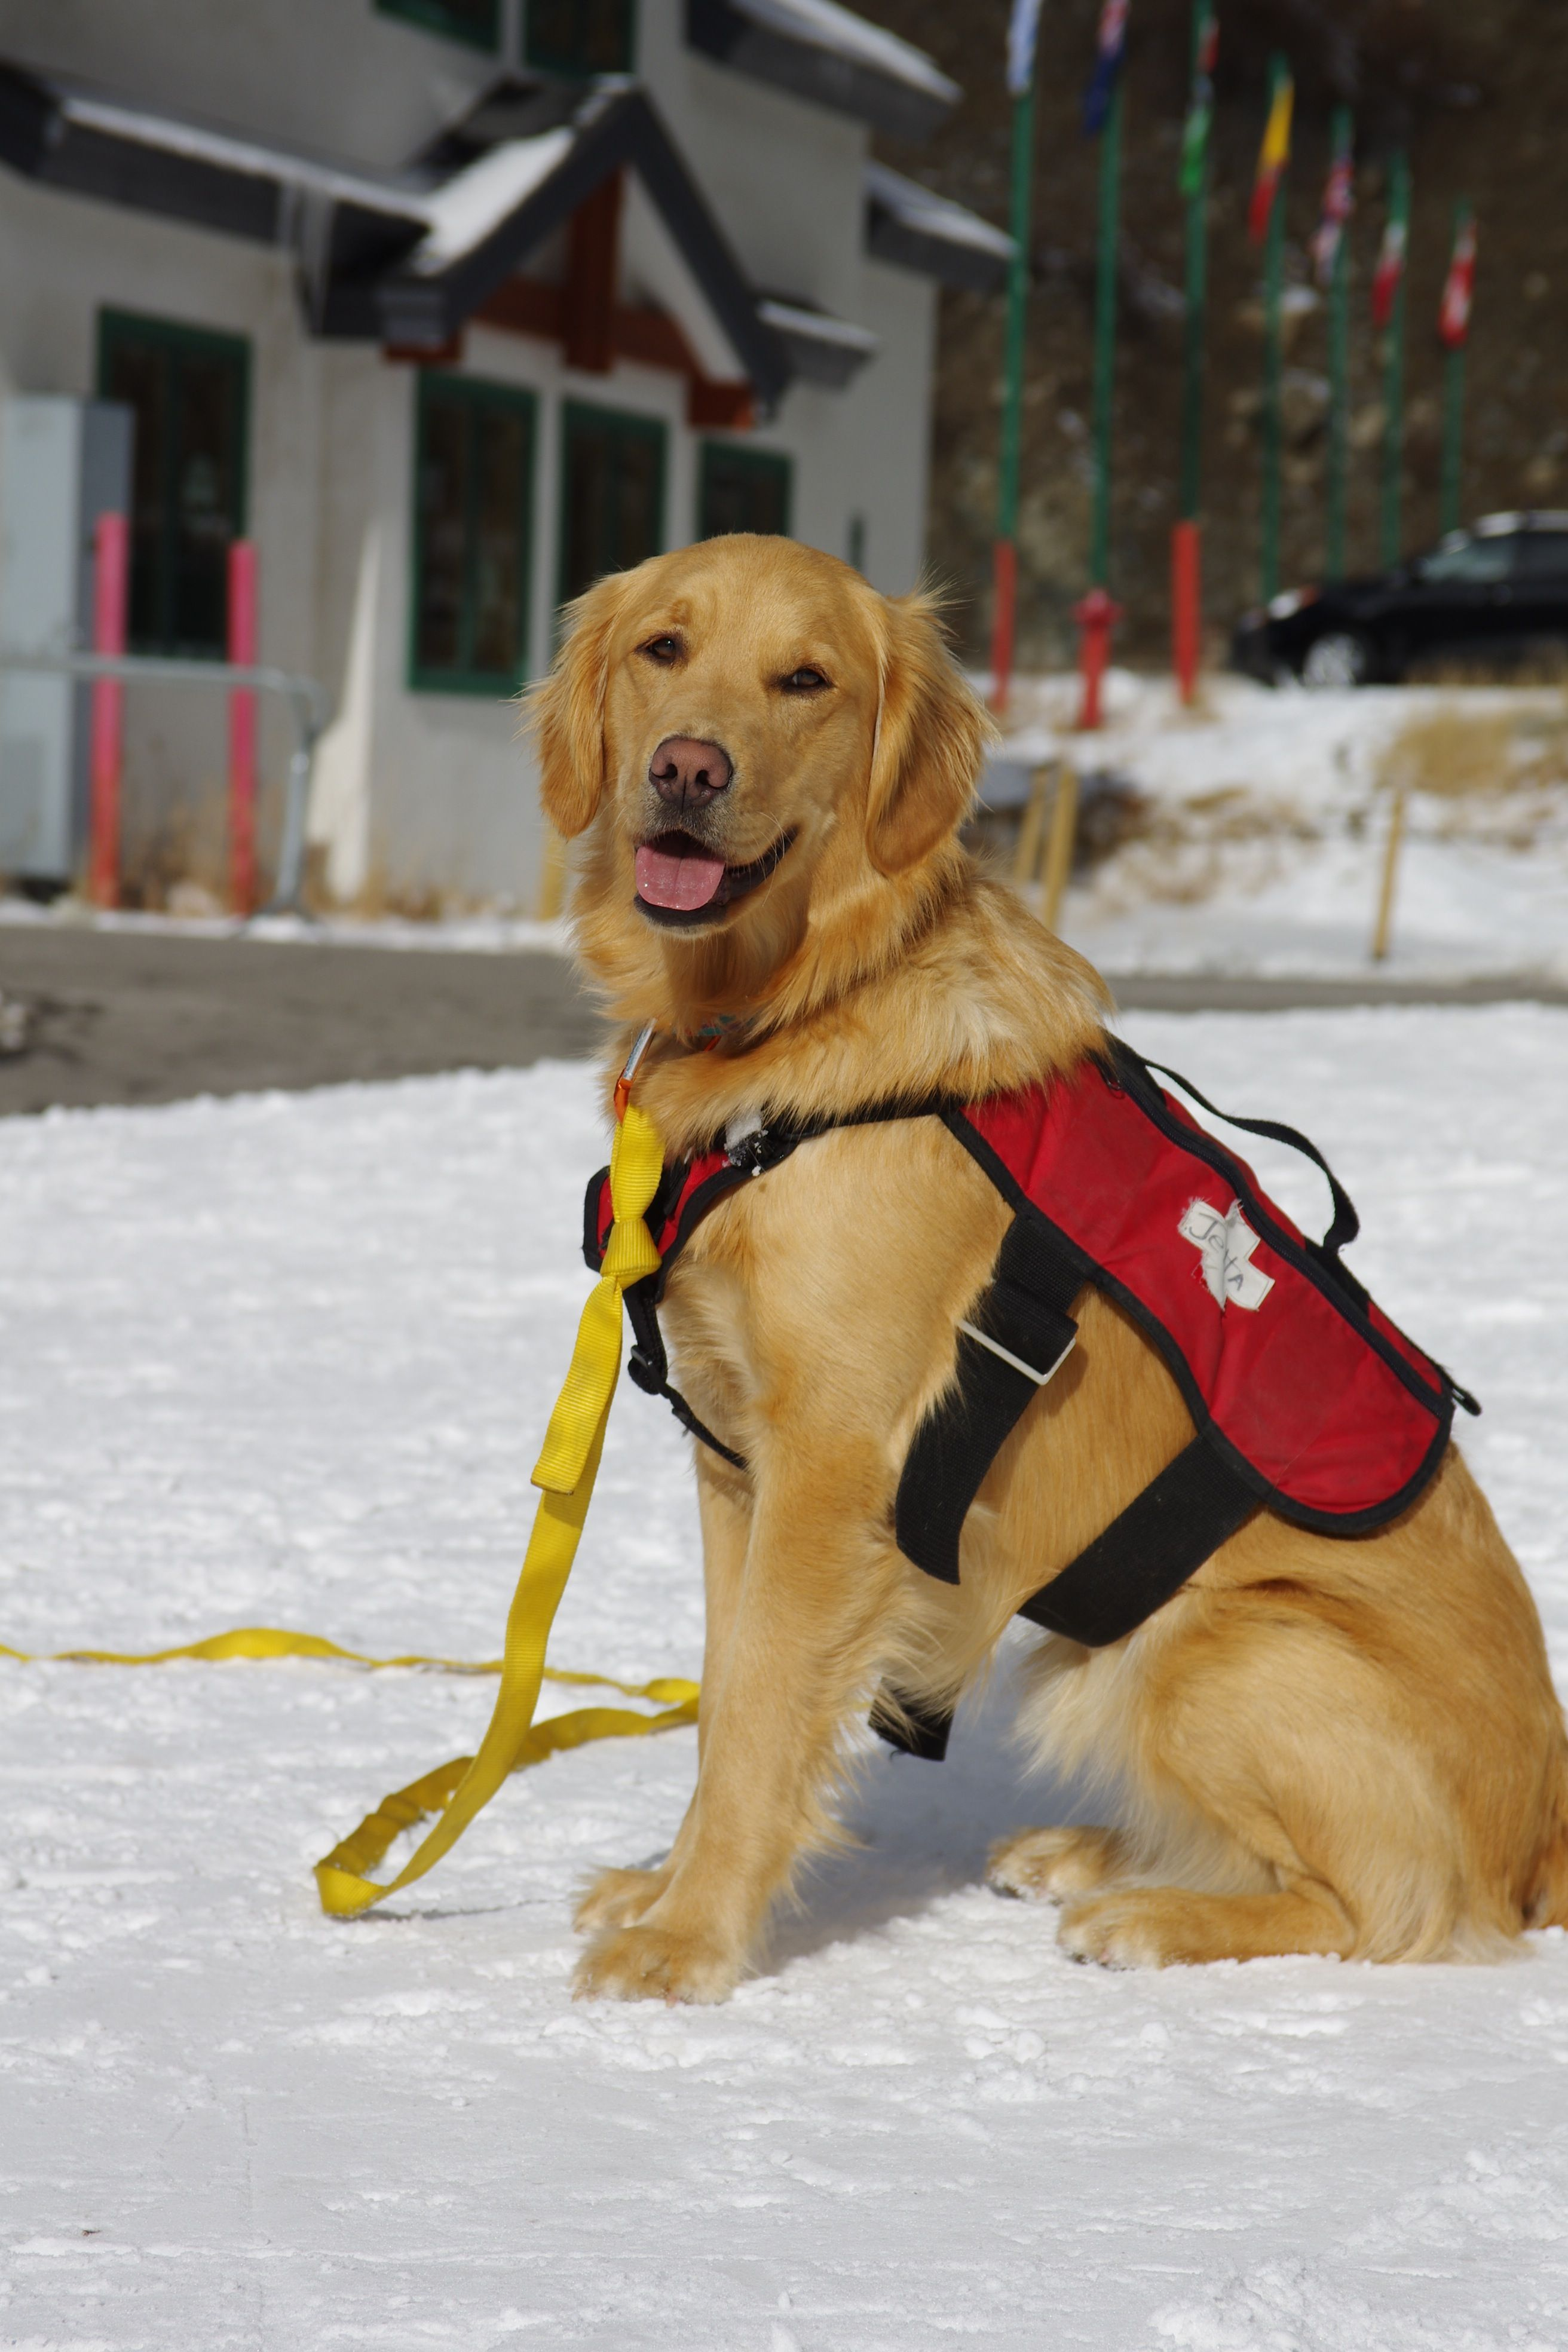 Ski patrol dog. Many are used in the Alps especially the